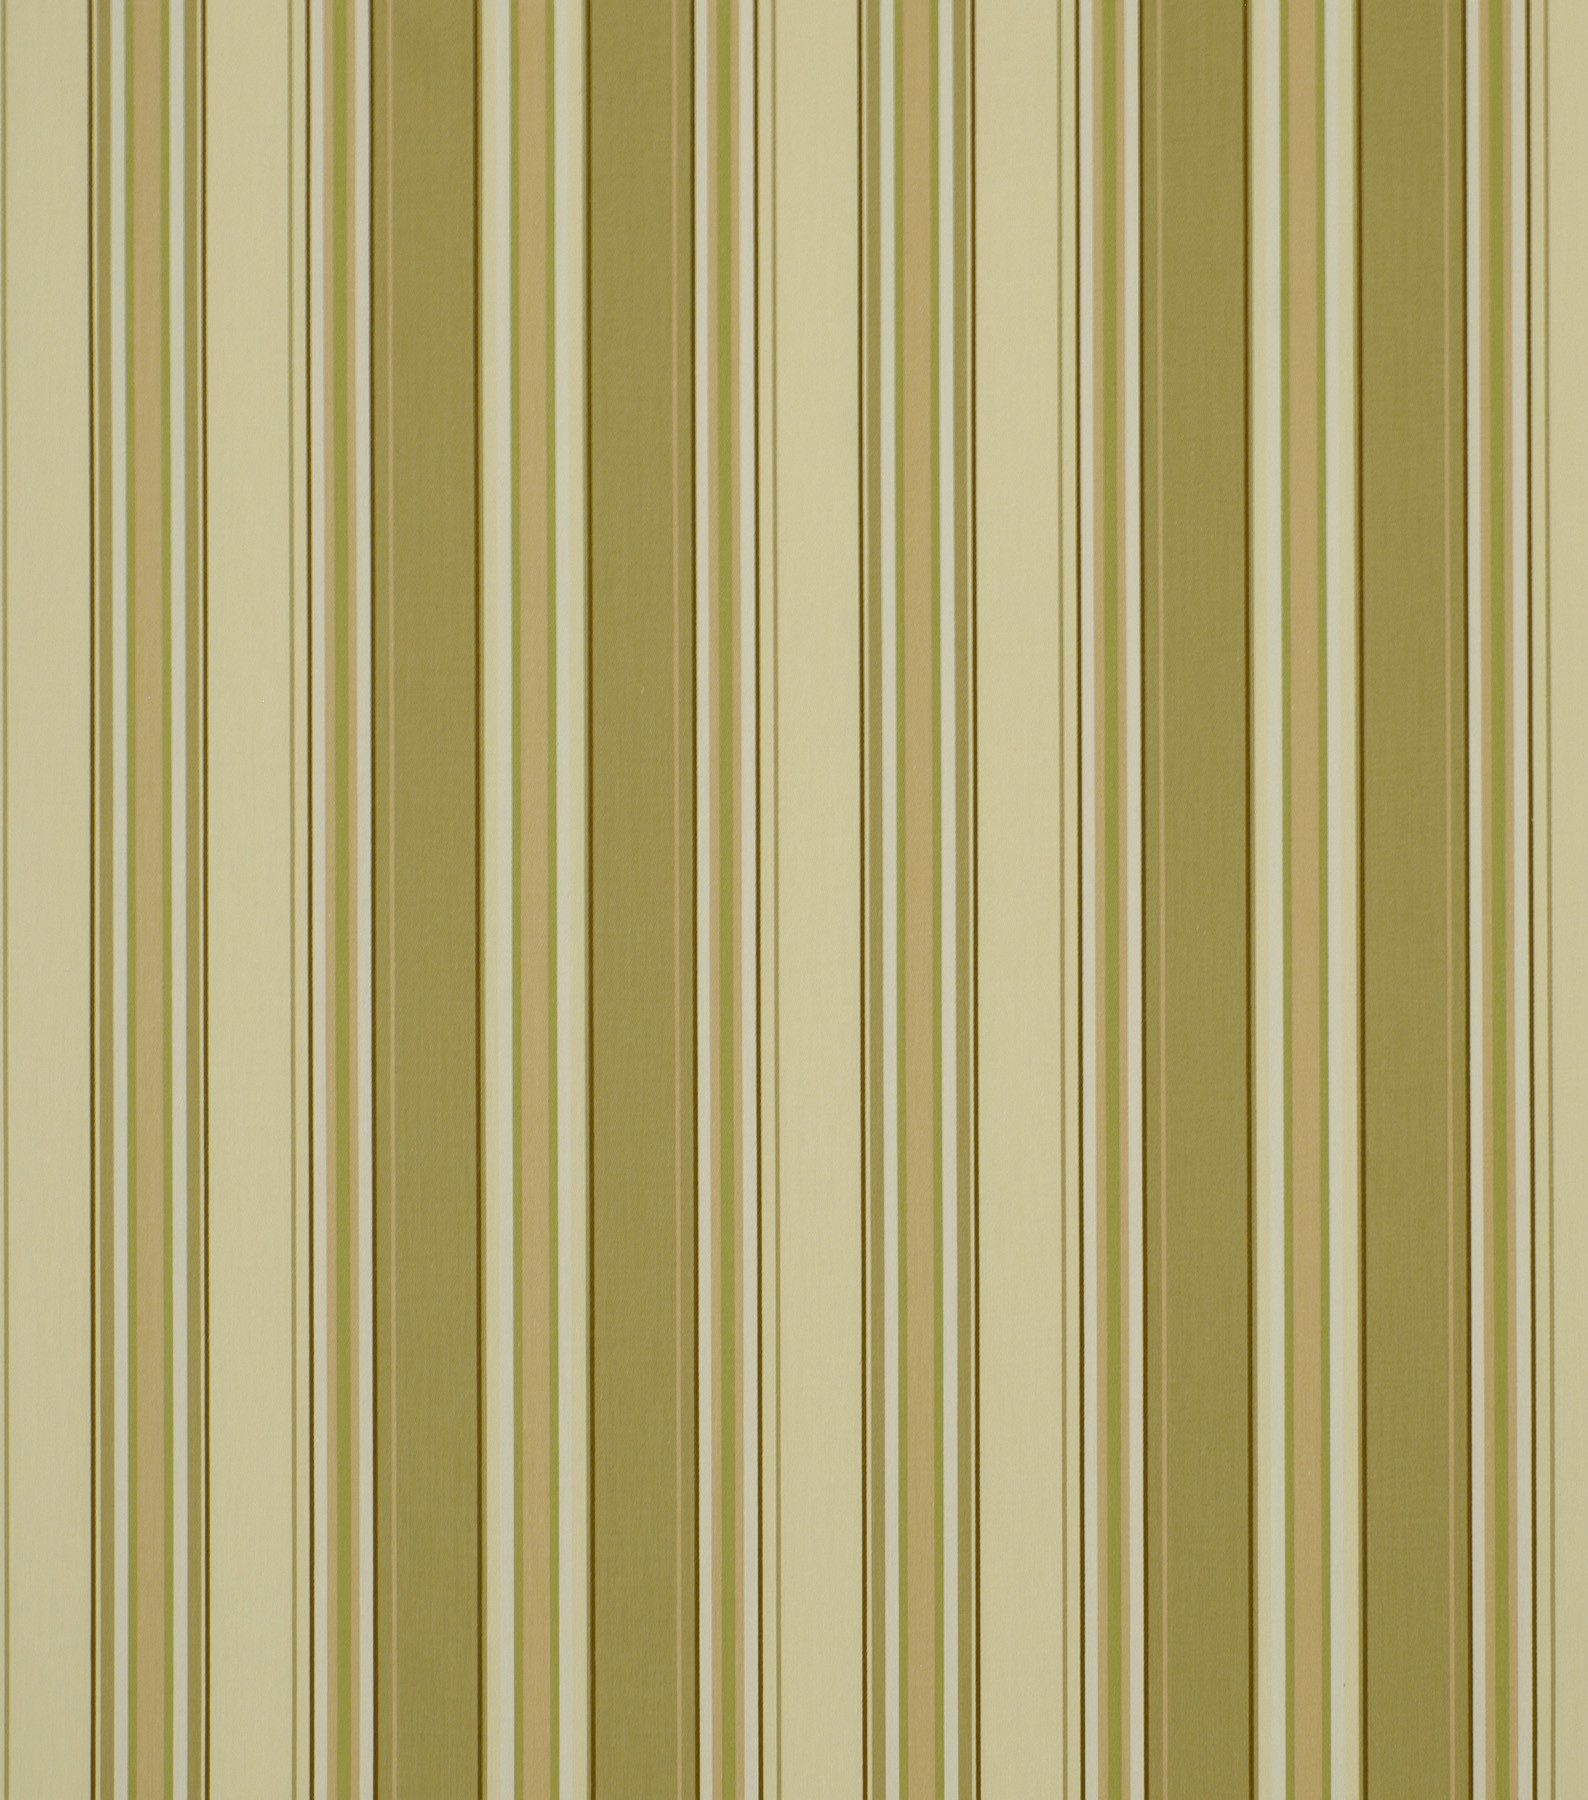 Home Decor 8\u0022x8\u0022 Fabric Swatch-Print Fabric Robert Allen Freewater Teastain